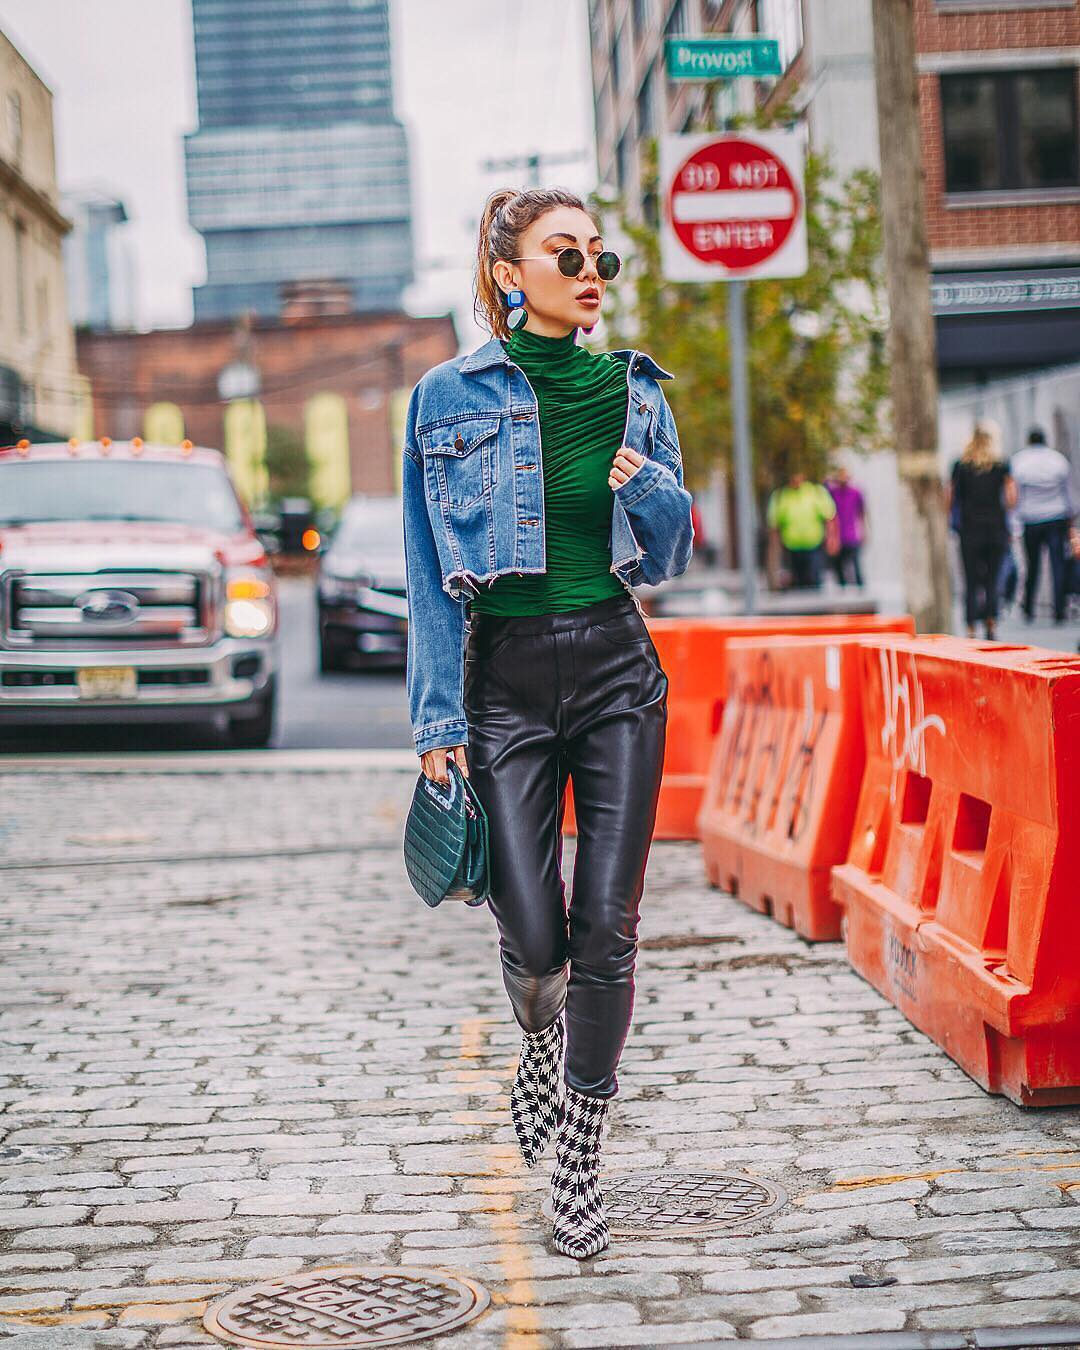 Denim Jacket And Black Leather Pants For Urban Street Walks 2019